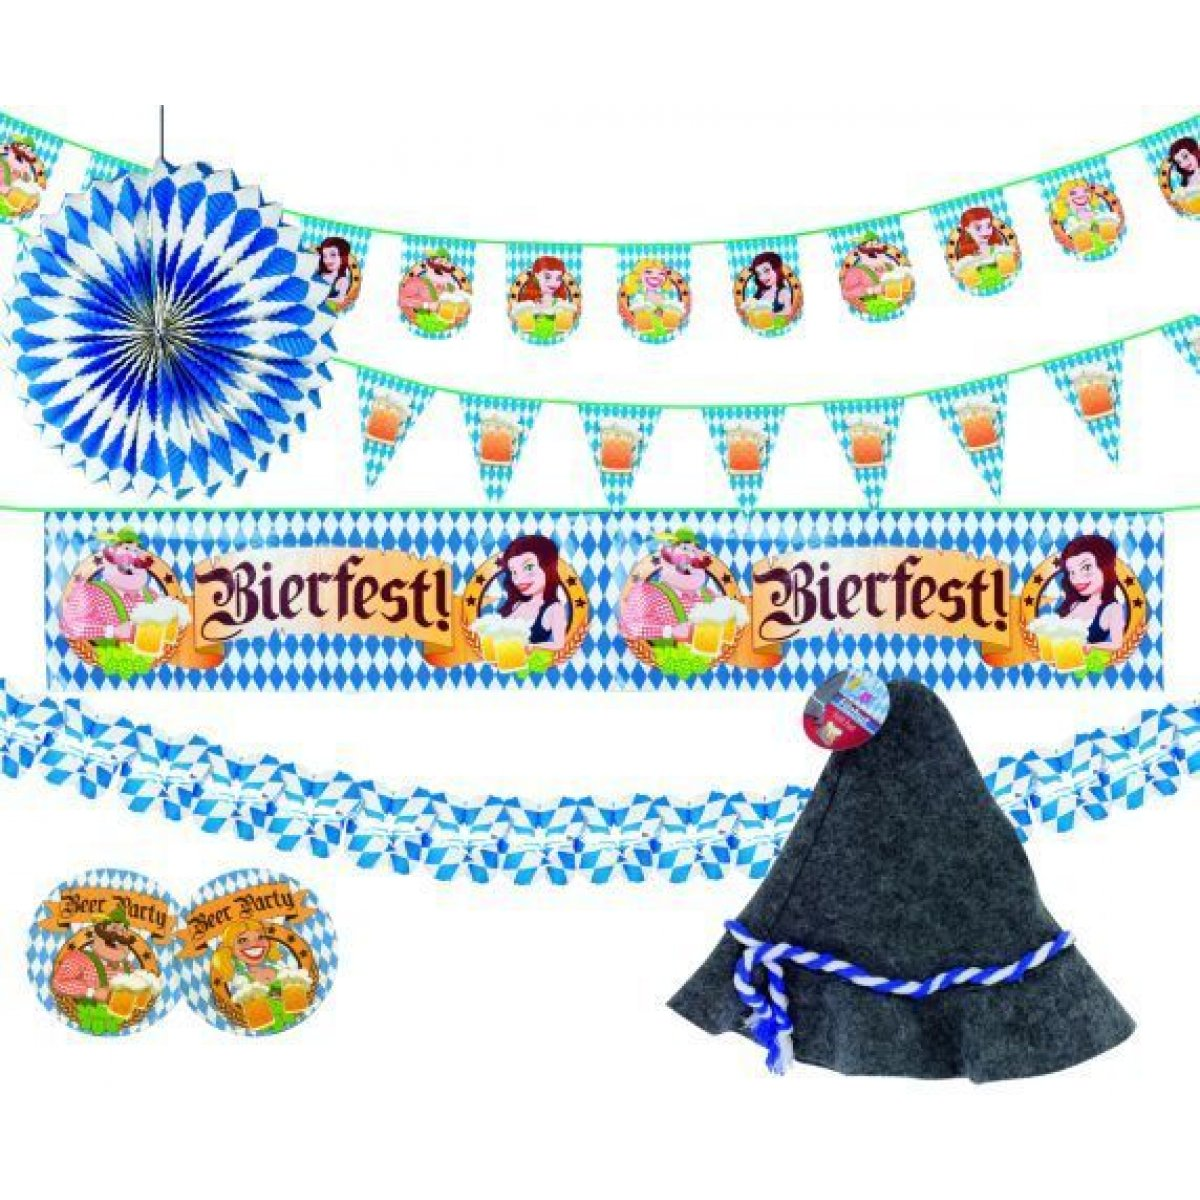 bierfest oktoberfest artikel 4 50. Black Bedroom Furniture Sets. Home Design Ideas